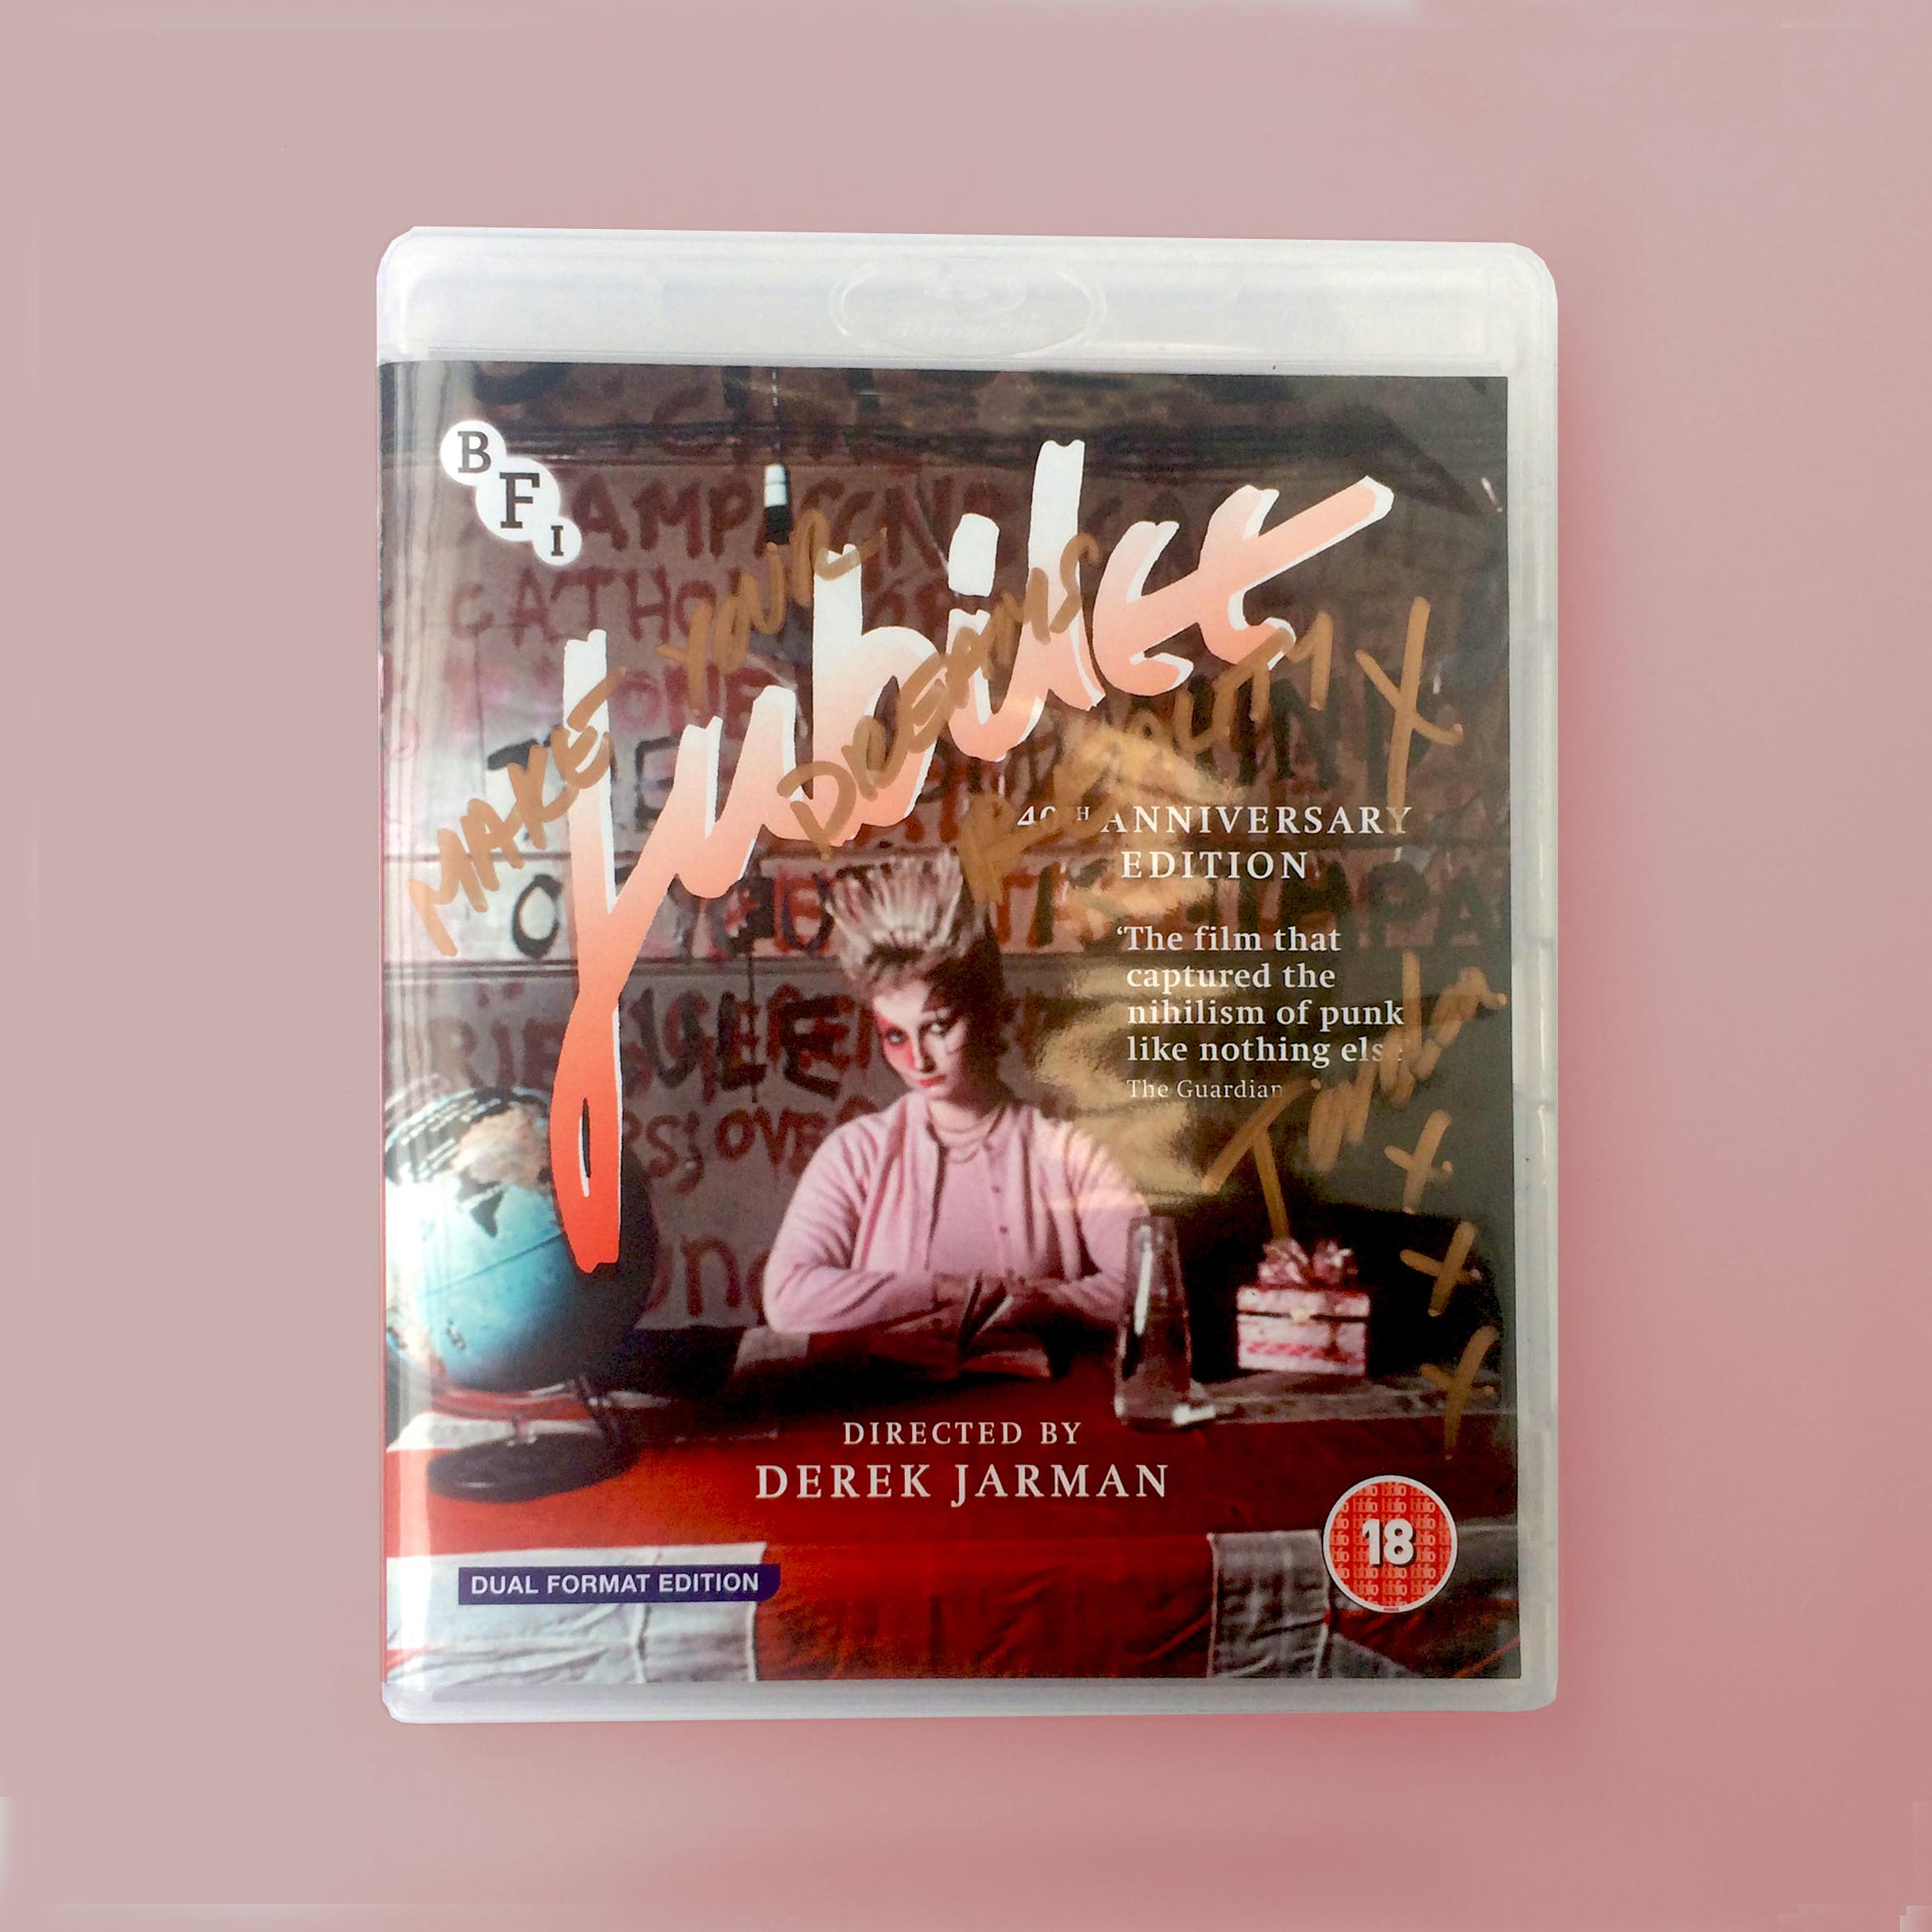 Buy Jubilee 40th Anniversary Edition (SIGNED COPY) (Dual Format Edition)